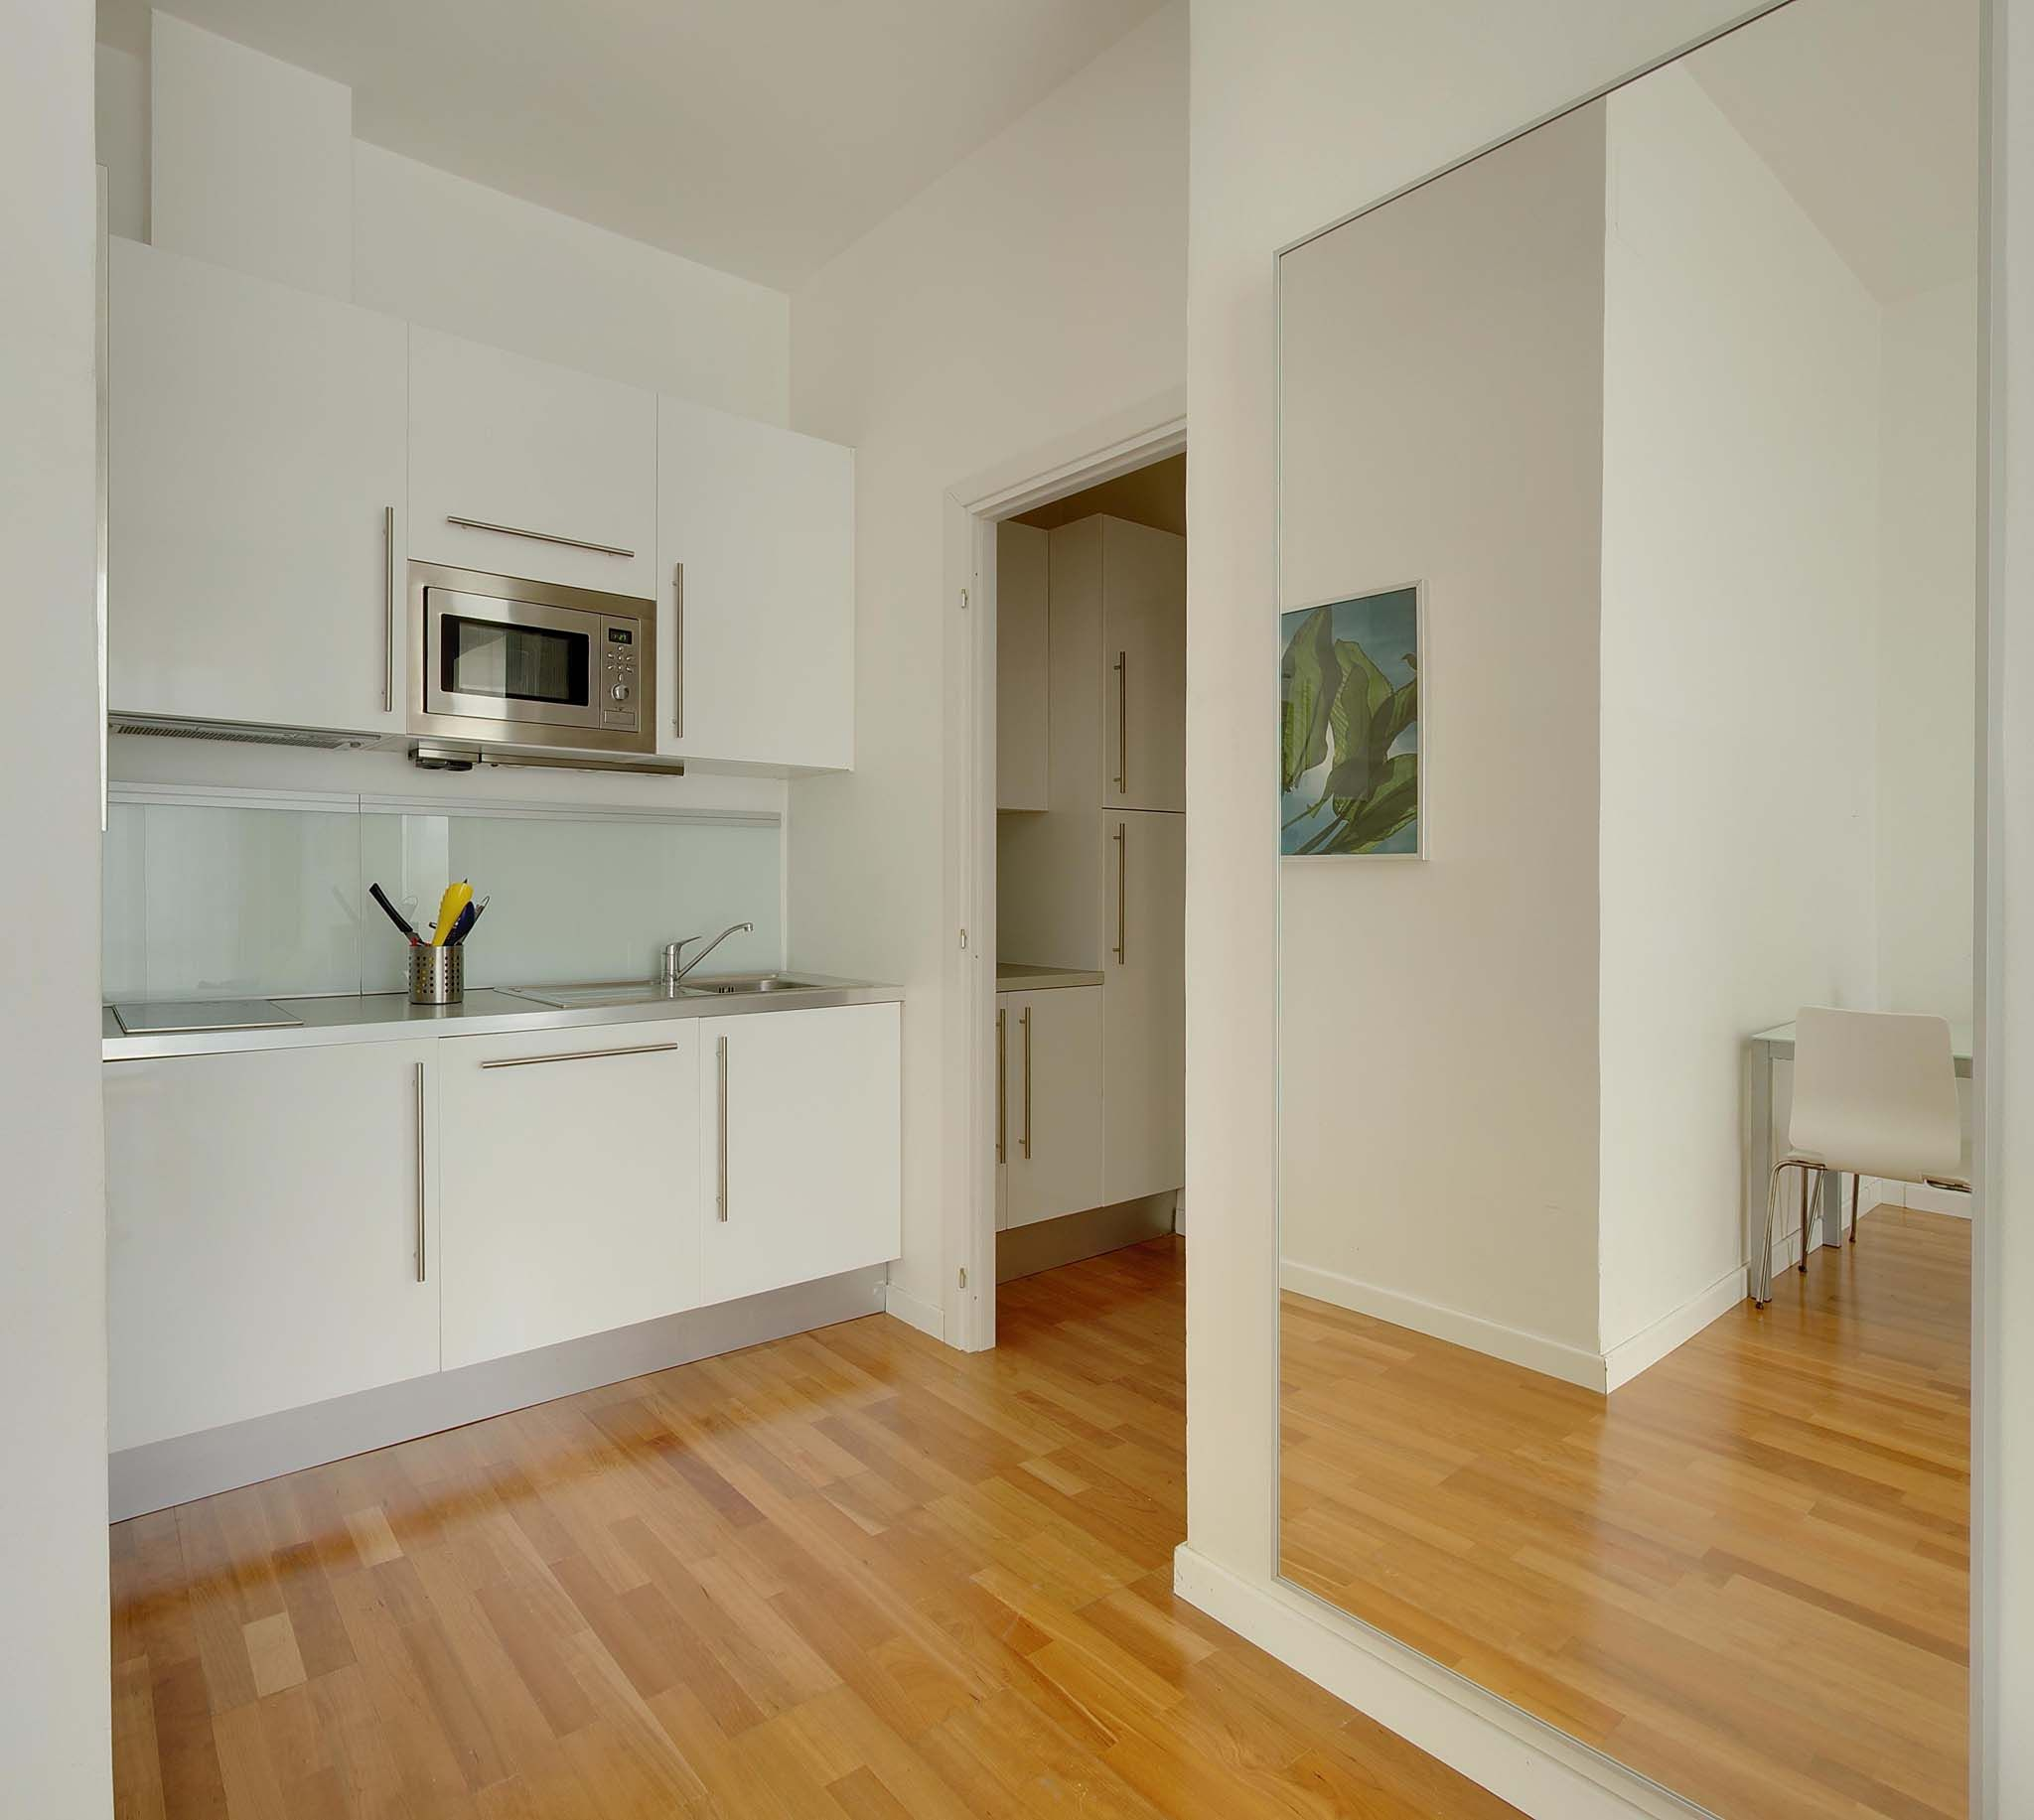 Find One Bedroom Apartments: Milan Italy Find And Book Holiday Homes Vacation